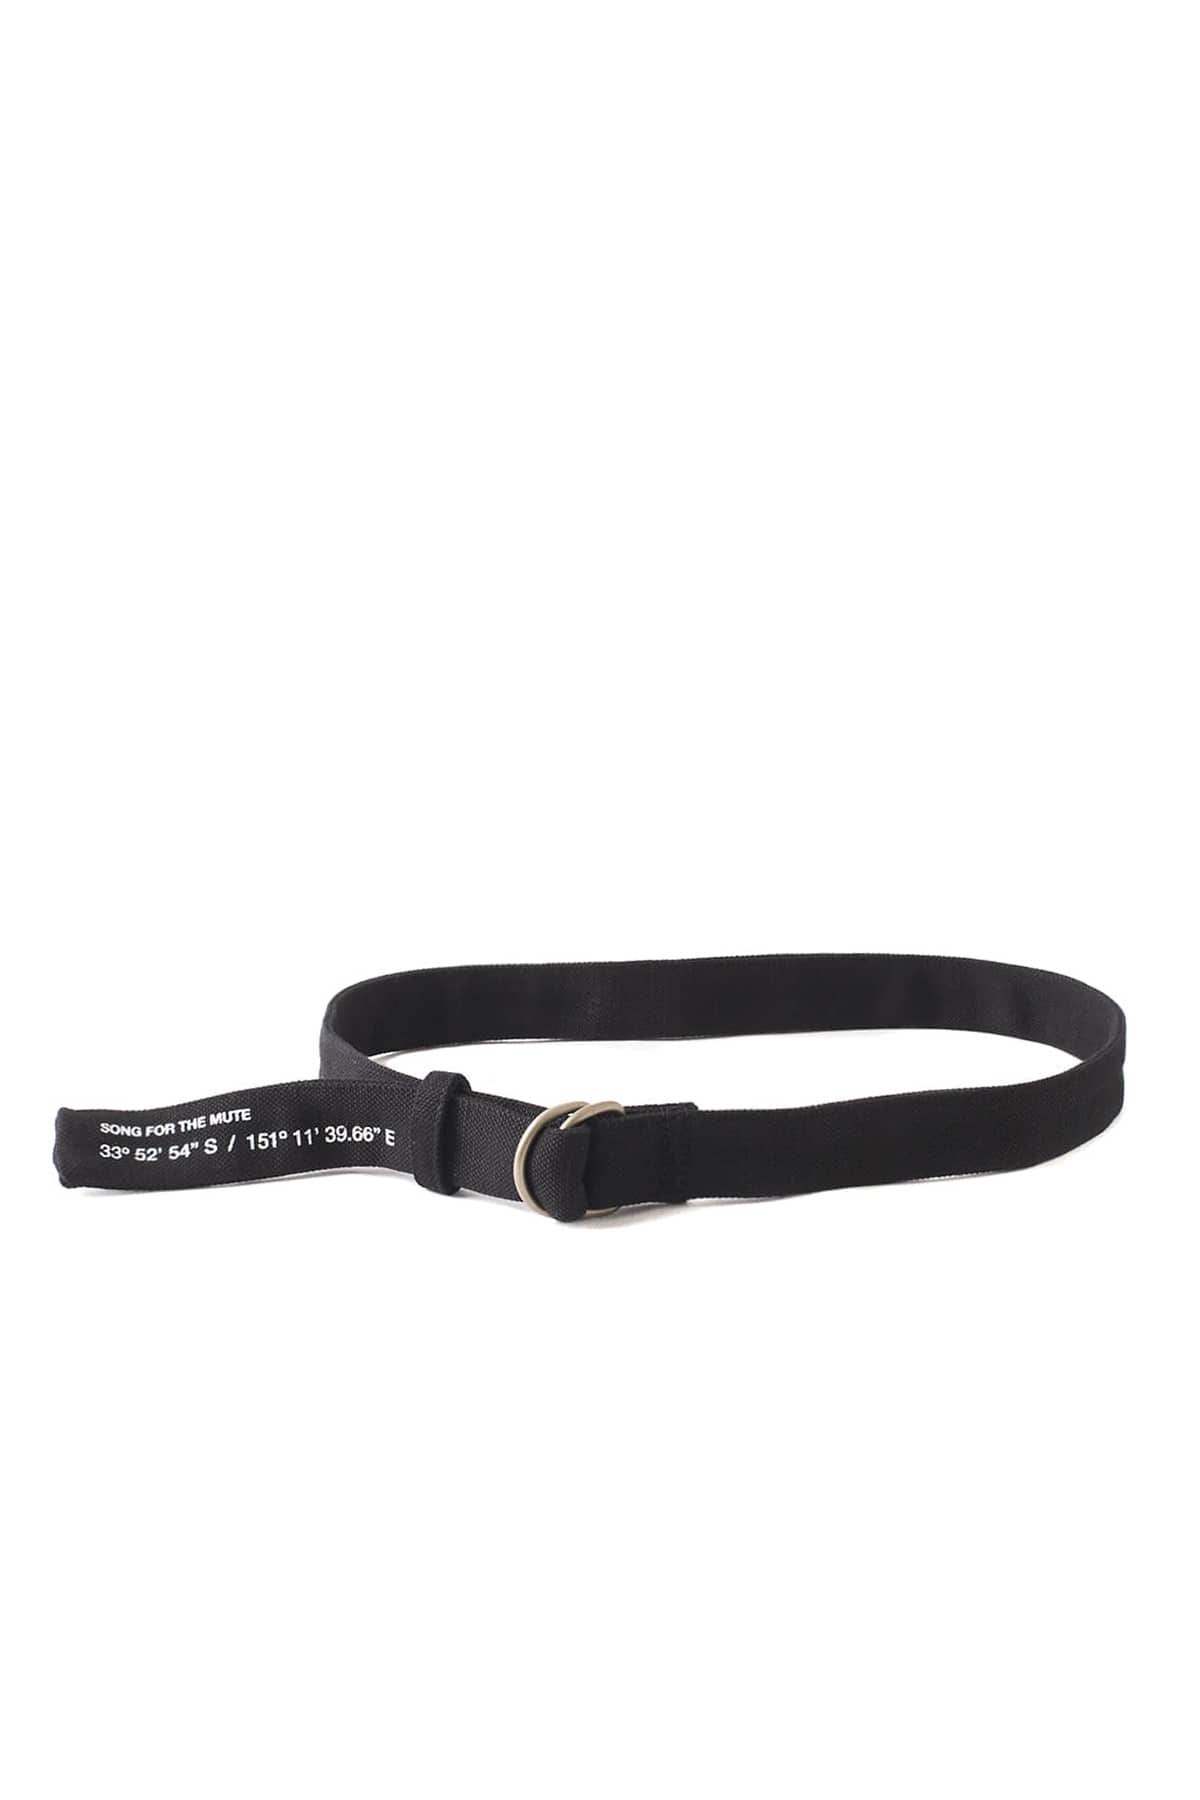 Song for the Mute : White Cordinates Printed Belt (Black)